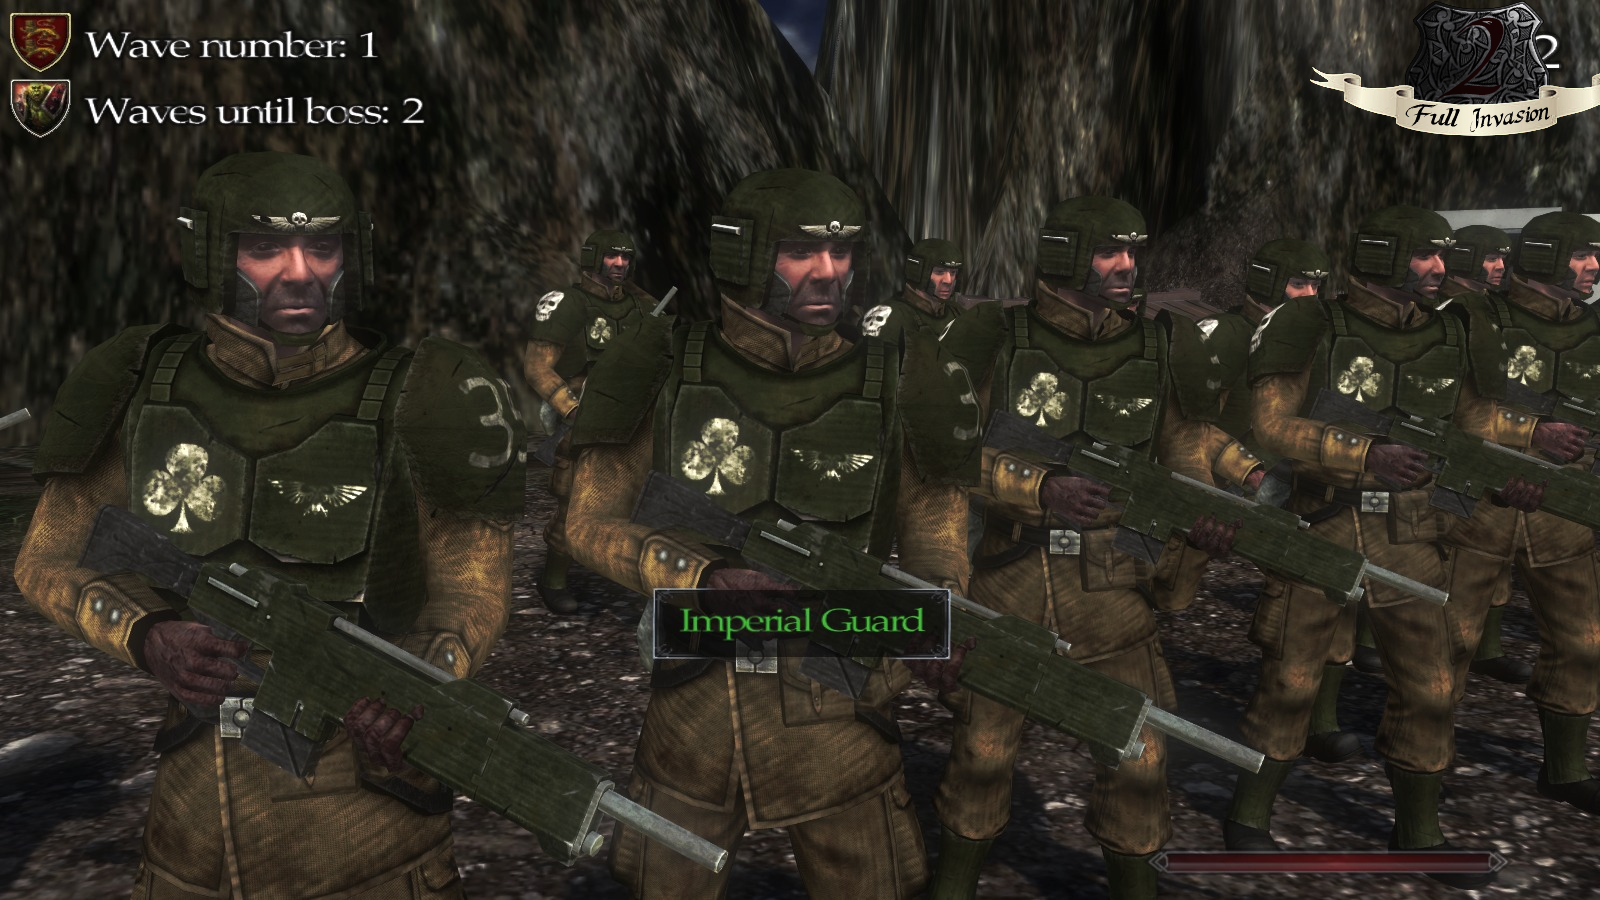 Imperial Guard image - Full Invasion 2 mod for Mount ...